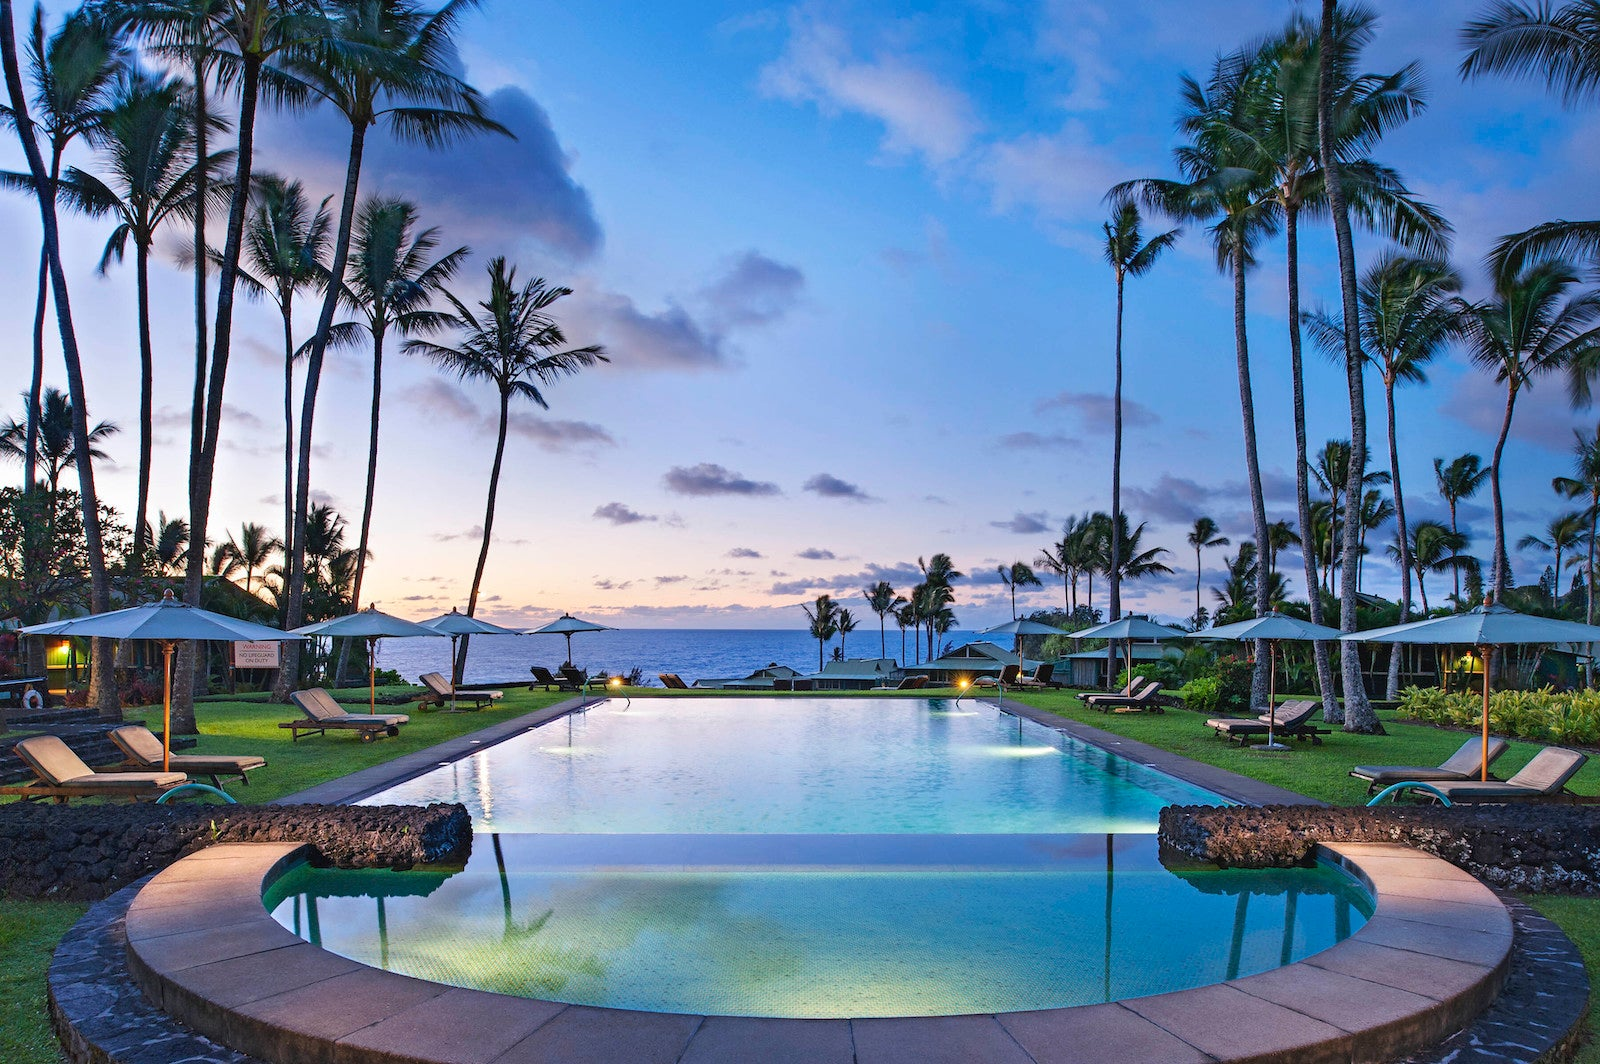 Maui COVID-19 travel restrictions: What you need to know about requirements to visit this Hawaiian island - The Points Guy